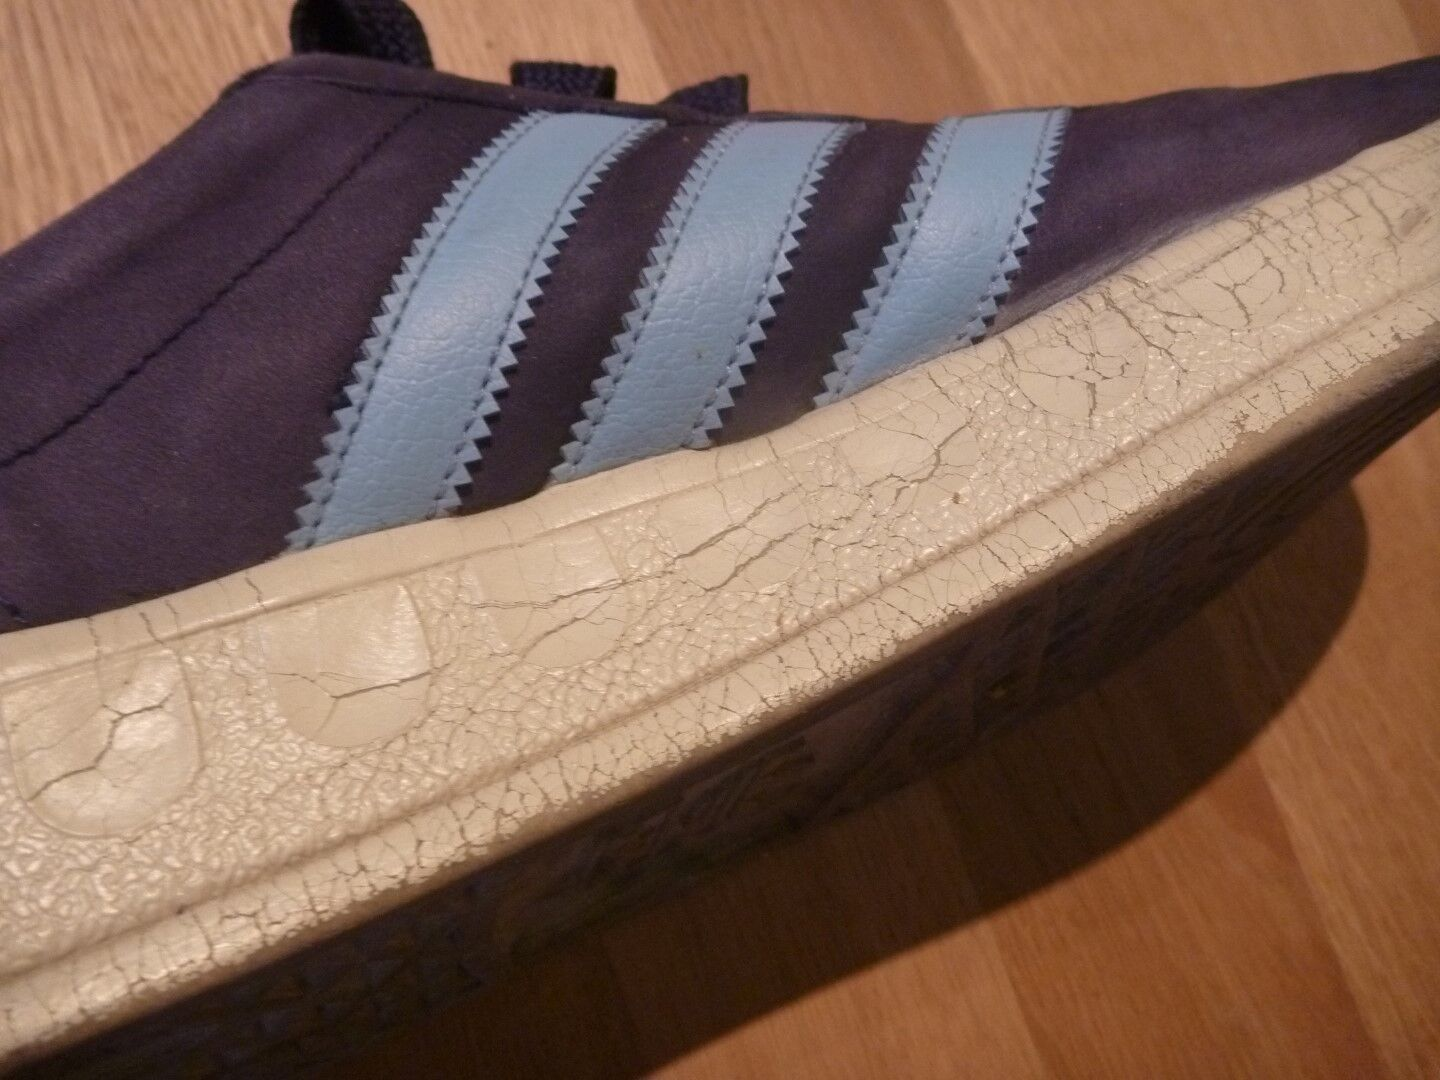 ADIDAS Trimm Trab Gr. 44 / 45 US 10,5 Retro Sneaker Old School blau weiß TOP